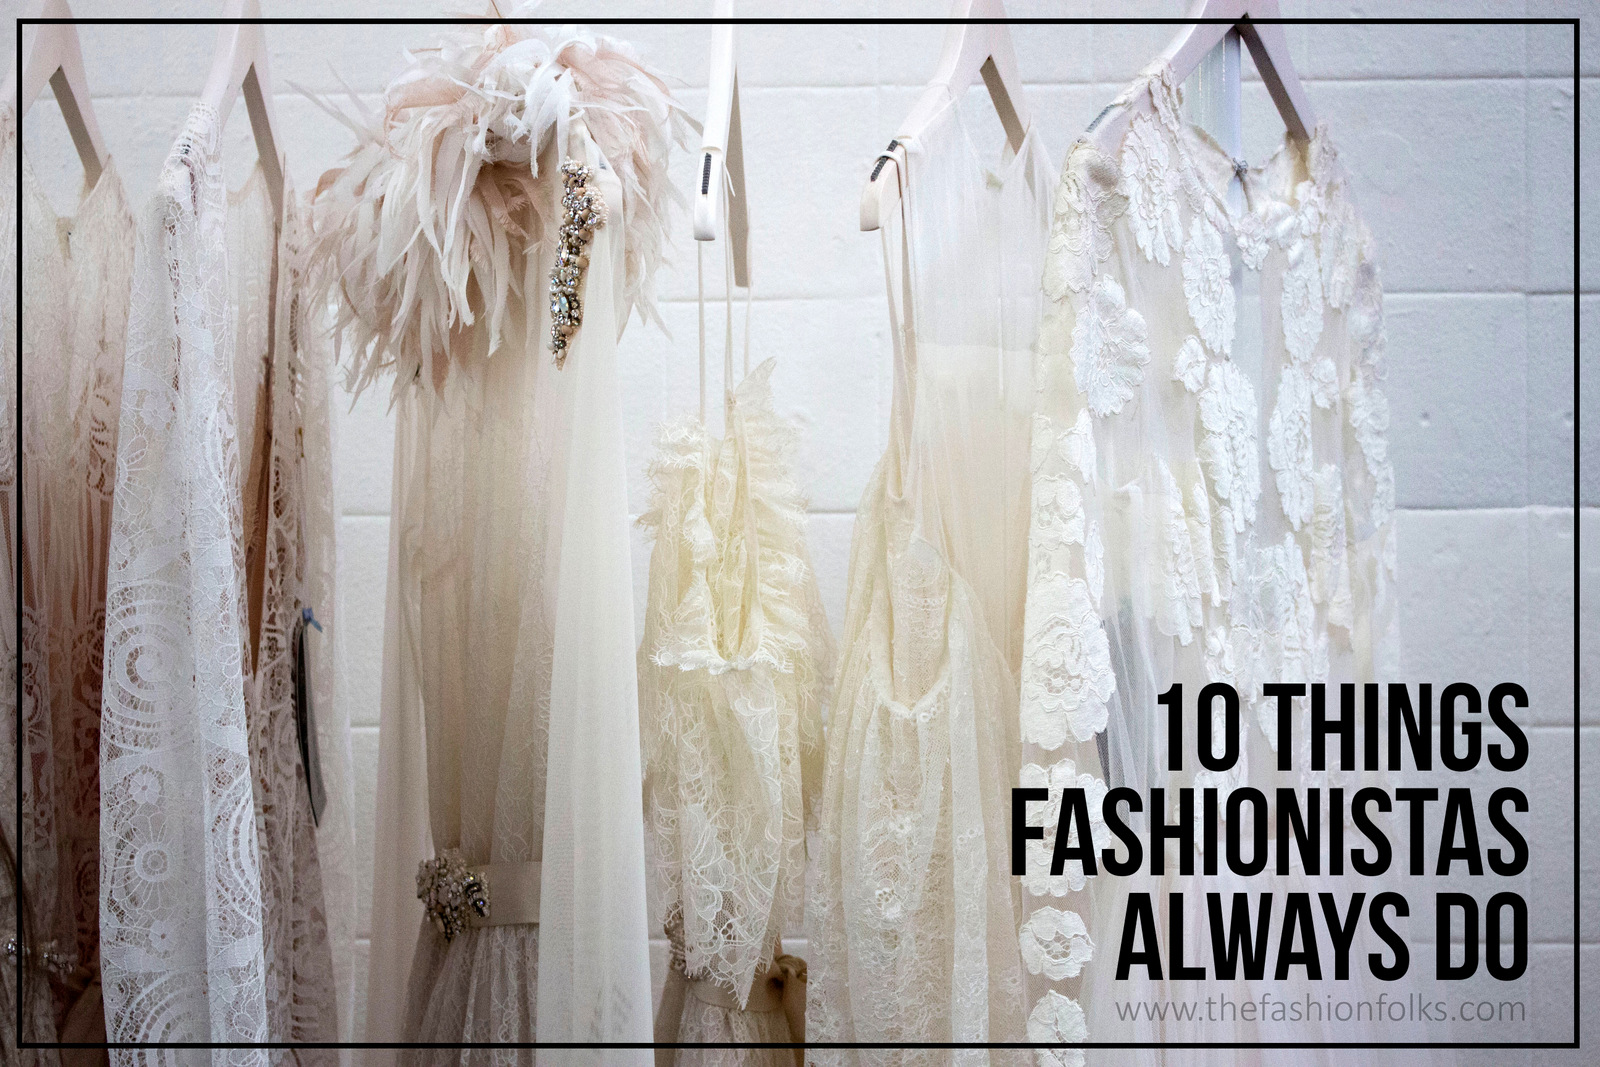 10 Things Fashionistas Always Do | The Fashion Folks